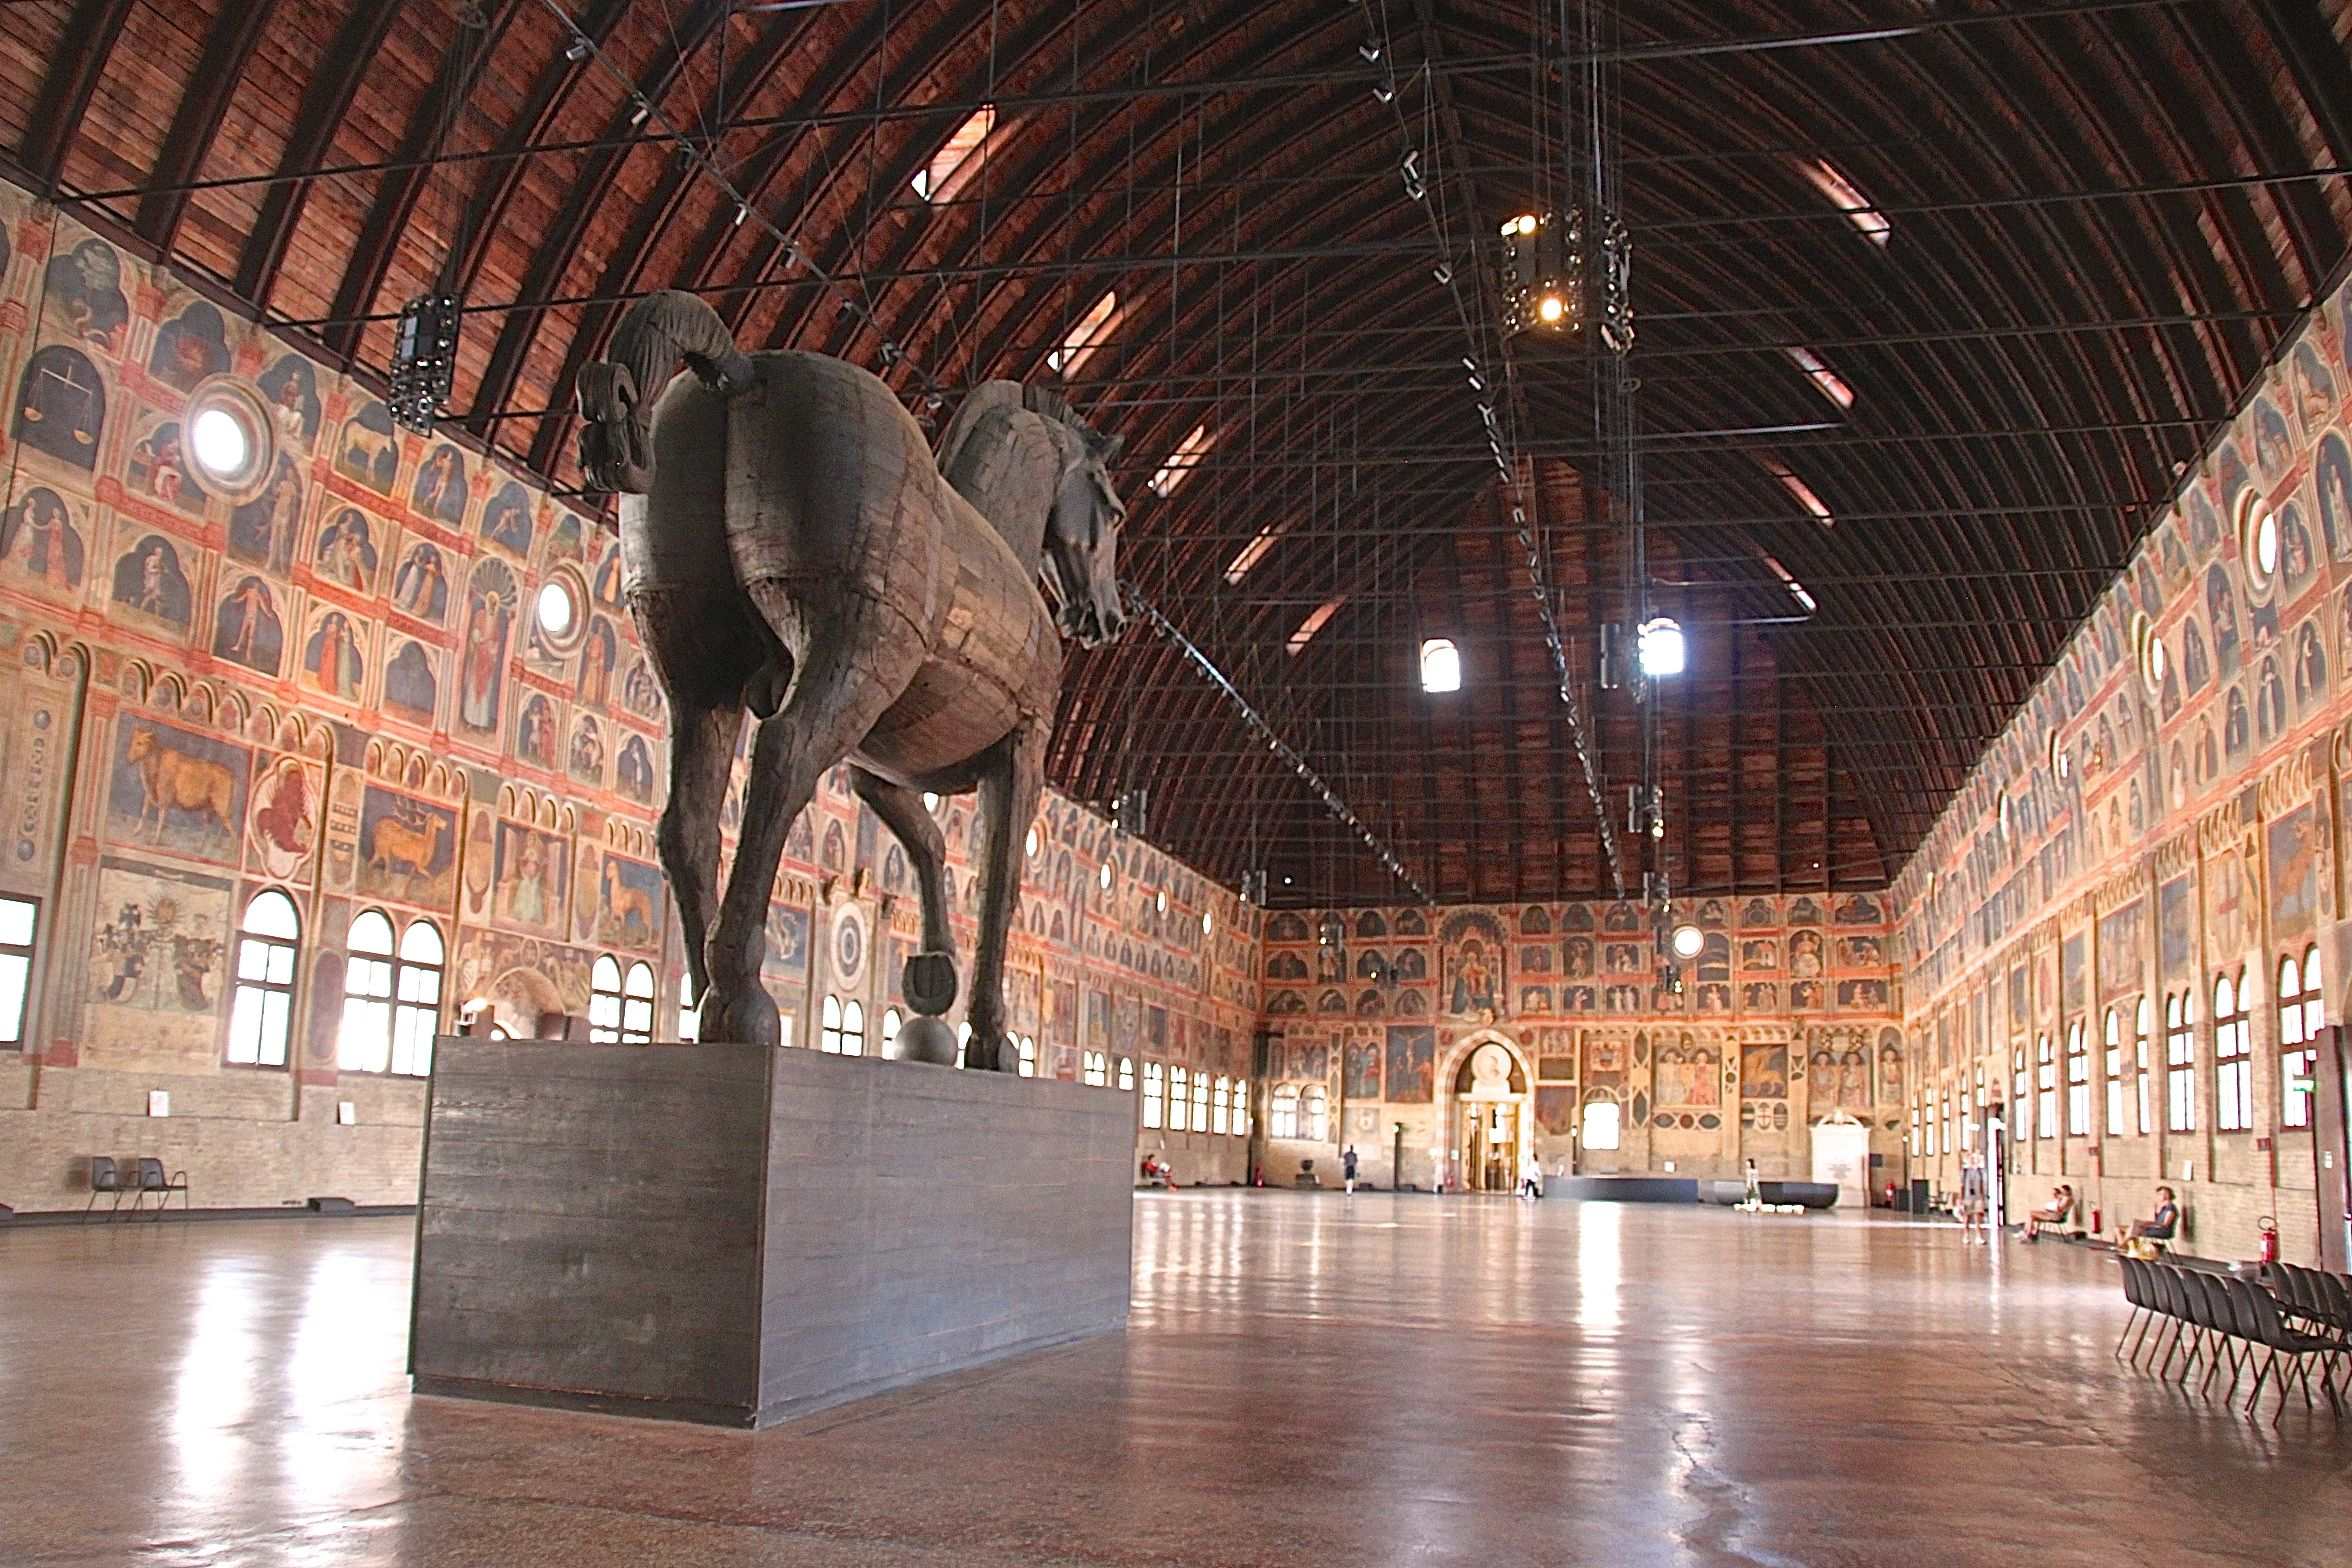 The vast great hall of the Palazzo della Ragione